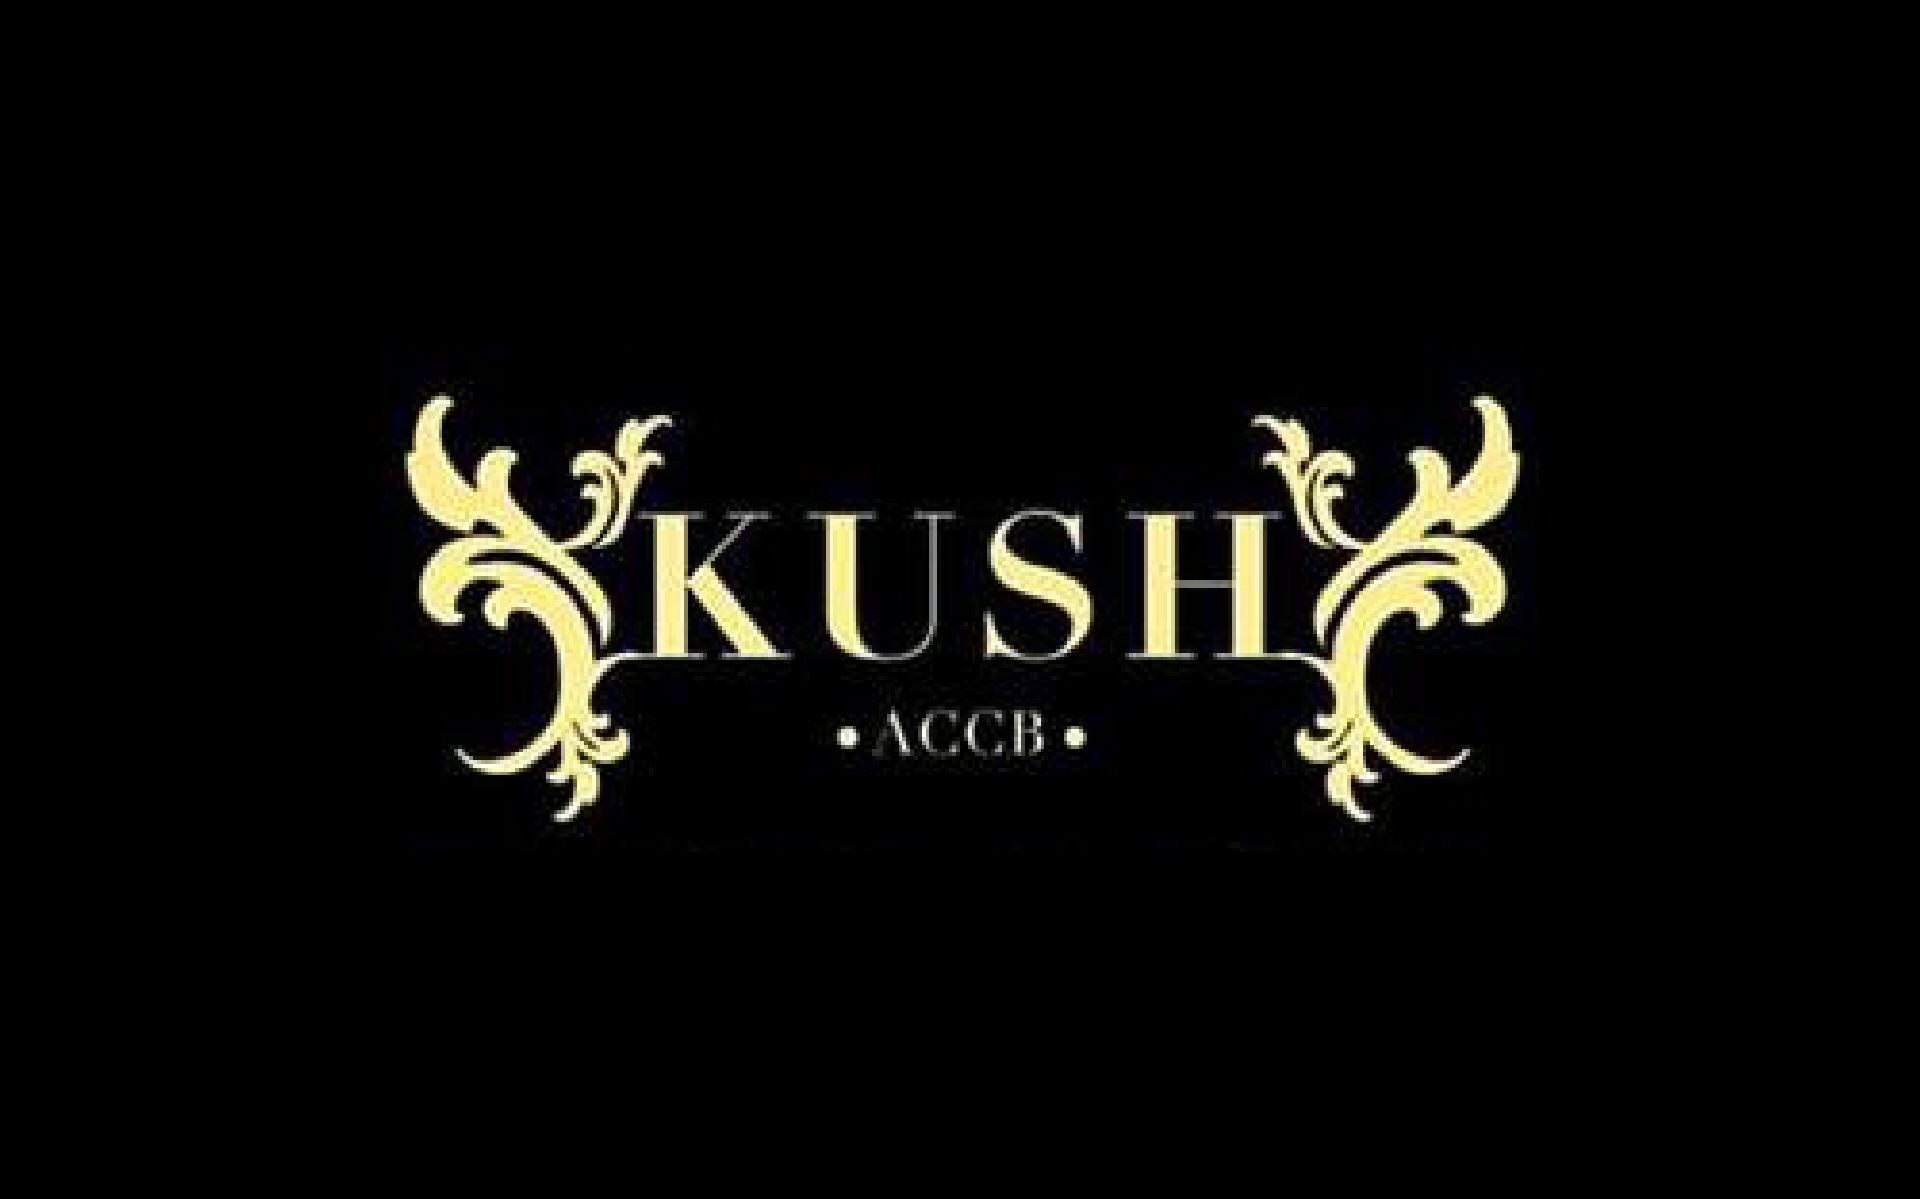 weed club kush cannabis club